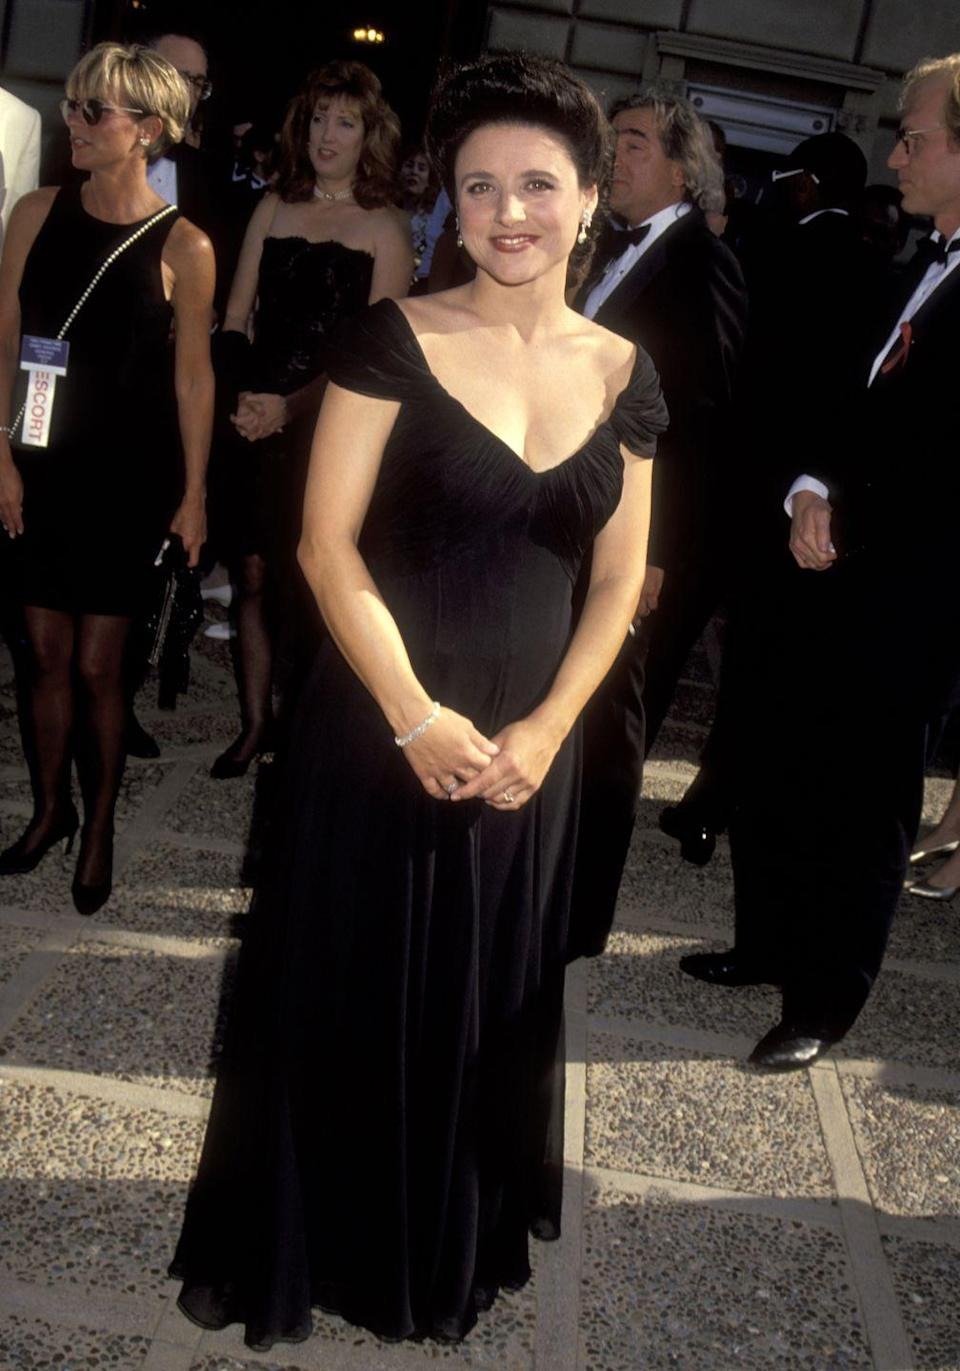 """<p>The <em>Veep</em><span class=""""redactor-invisible-space""""> star wore this black dress to the Emmy Awards in 1992 when she was nominated for <em>Seinfeld</em>. </span></p>"""